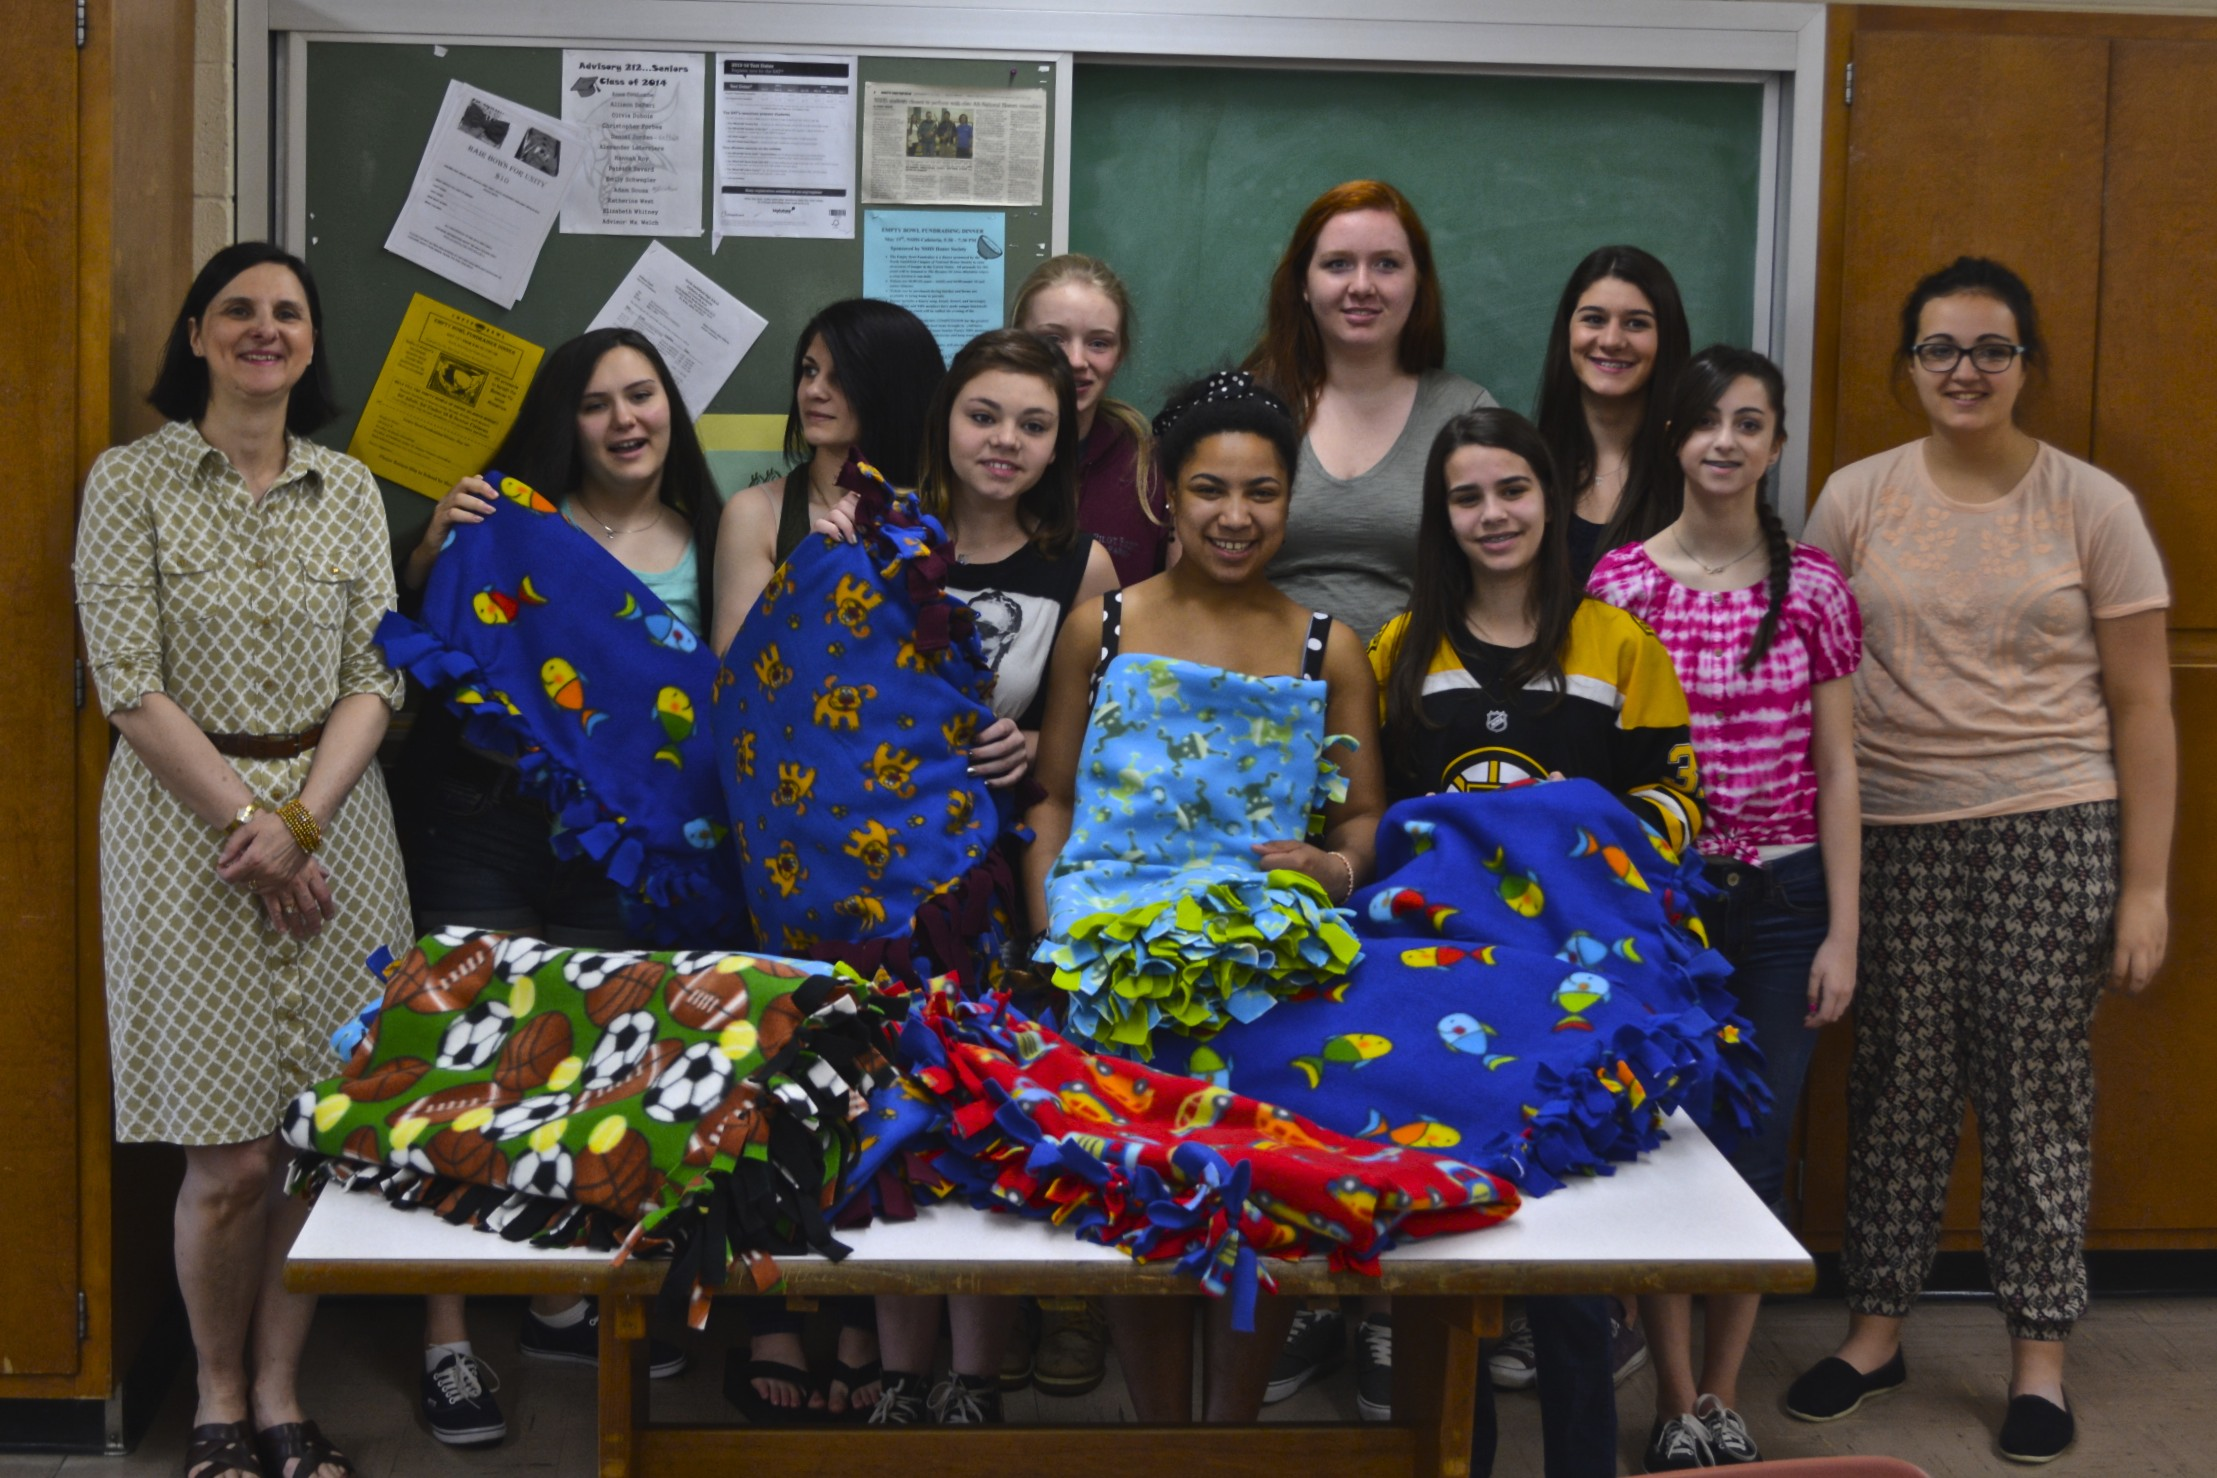 Students at NSHS doing great things! Thank you Mrs. Kolanko and the Fashion Design class!